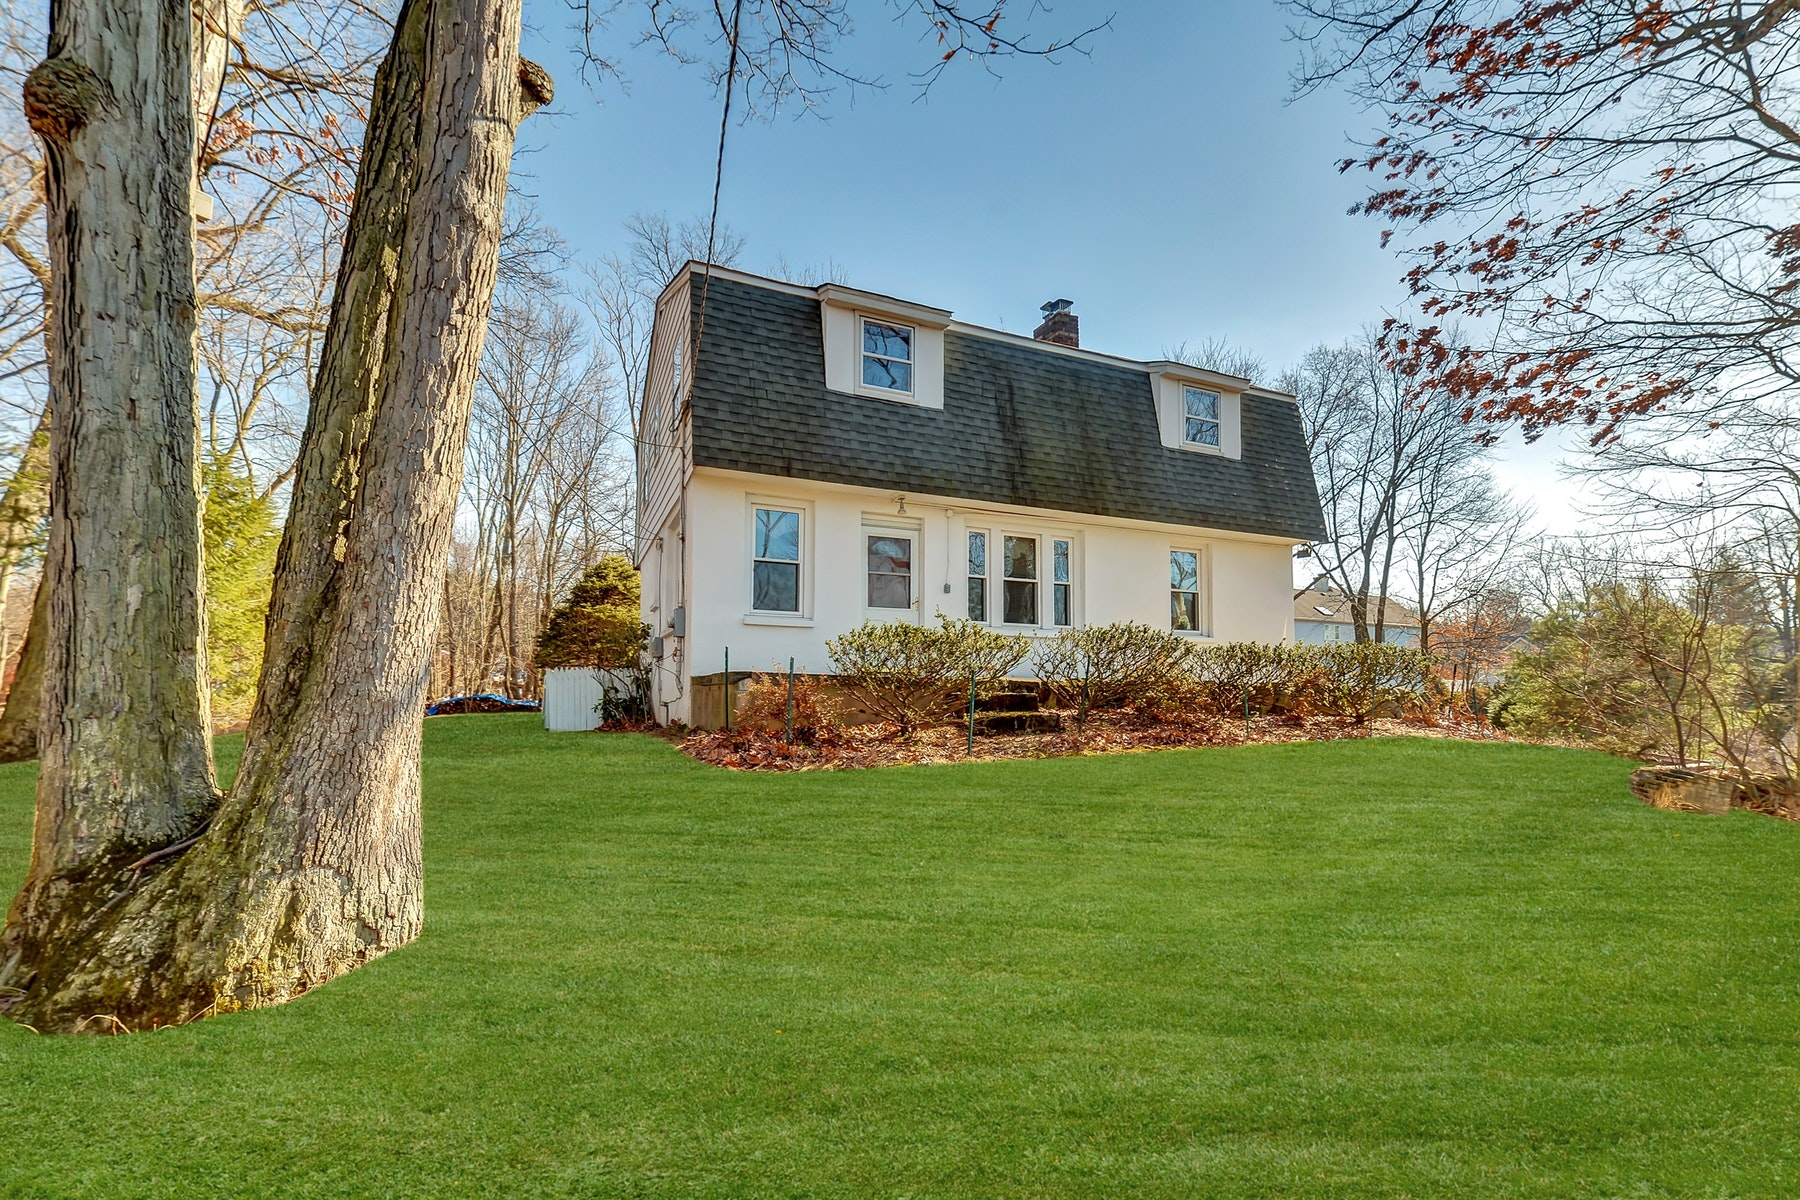 Single Family Home for Sale at Colonial Nestled on a Private and Quiet Lane 78 Suters Lane Wayne, New Jersey 07470 United States